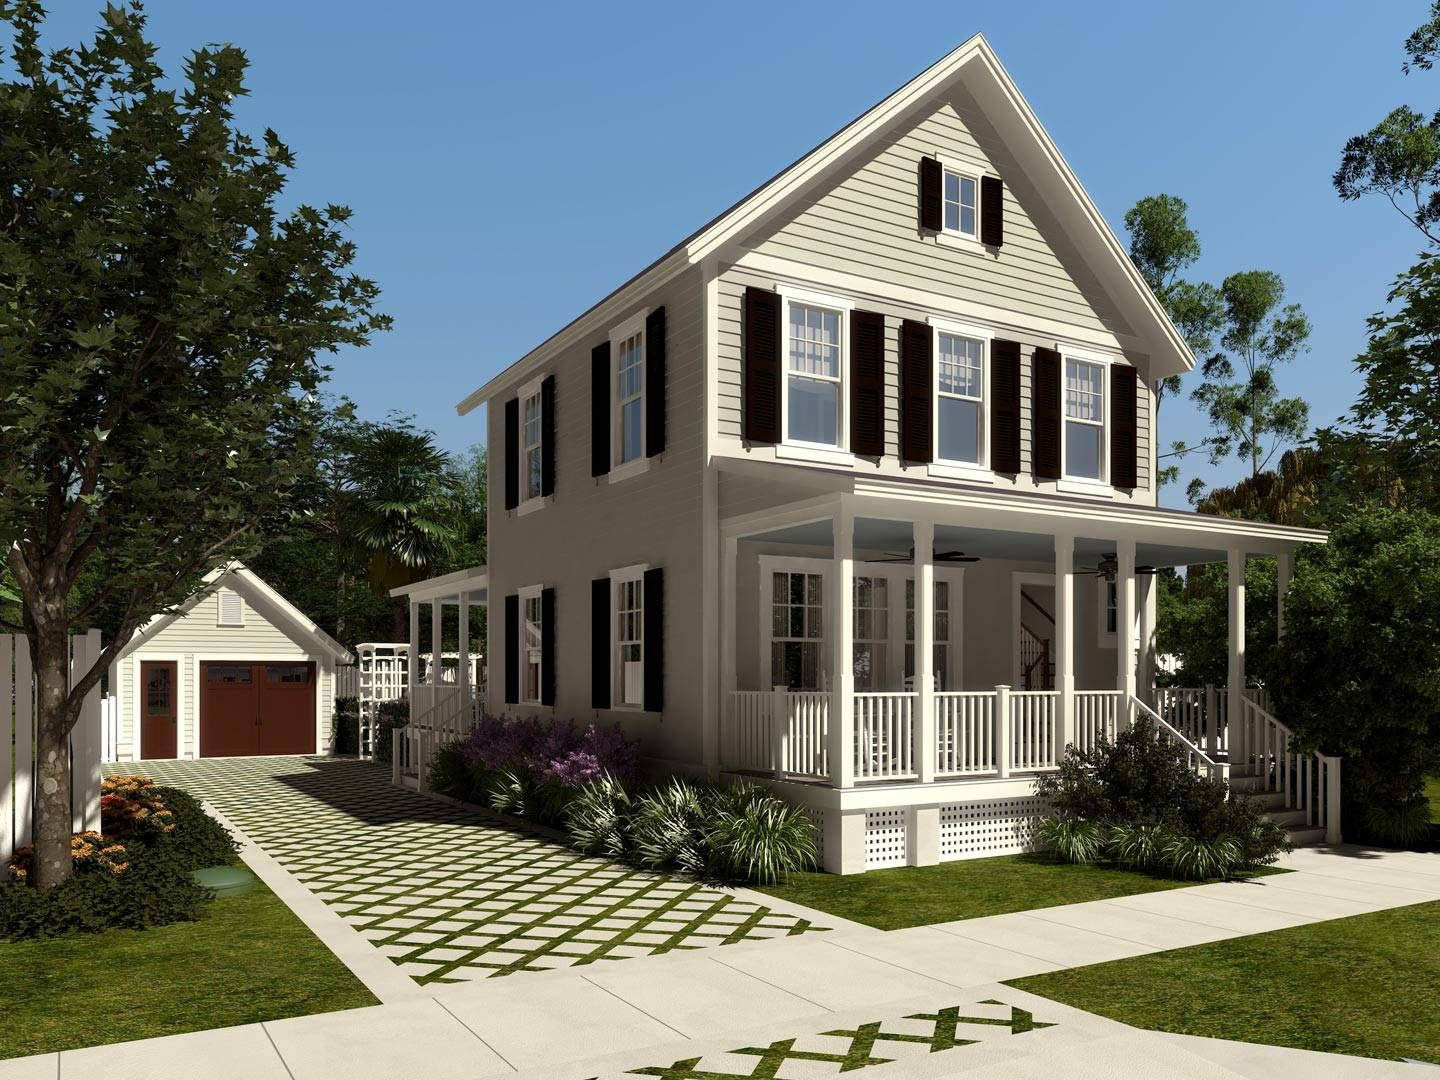 9 Building Plans for Cozy Affordable Cottages Folk